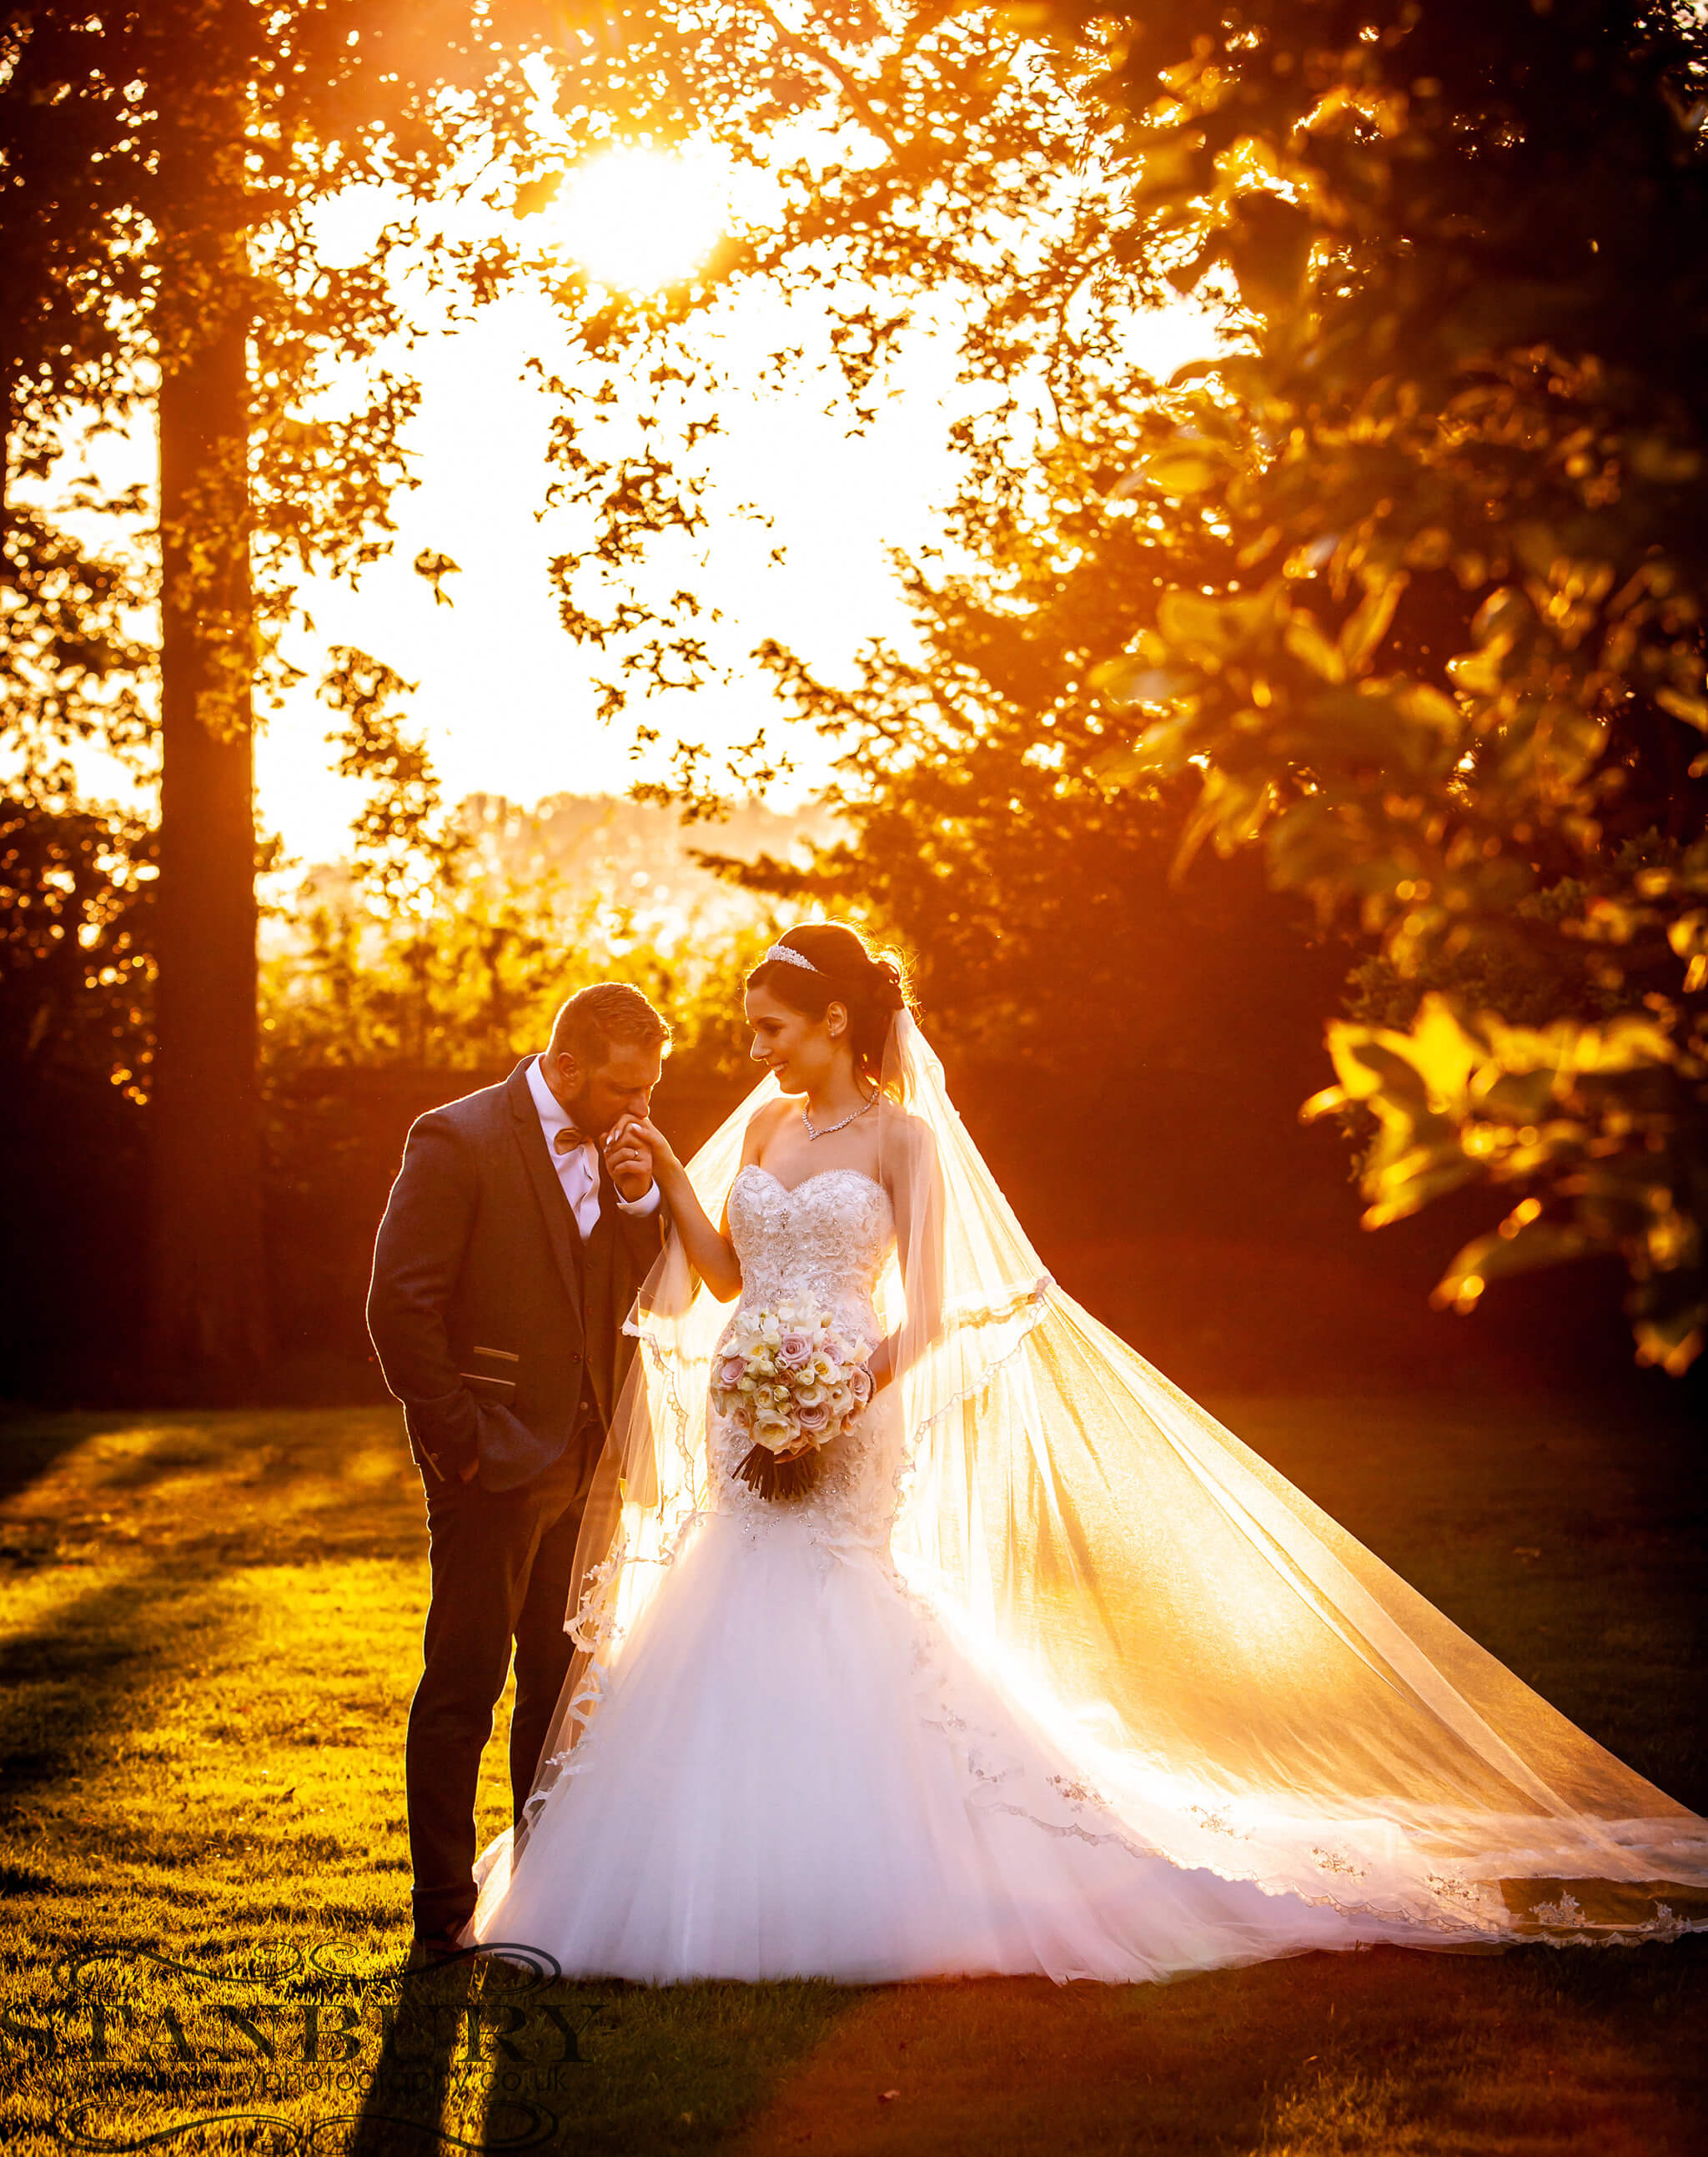 sunset-bride-groom-colshaw-hall-wedding-cheshire-photographers-stanbury